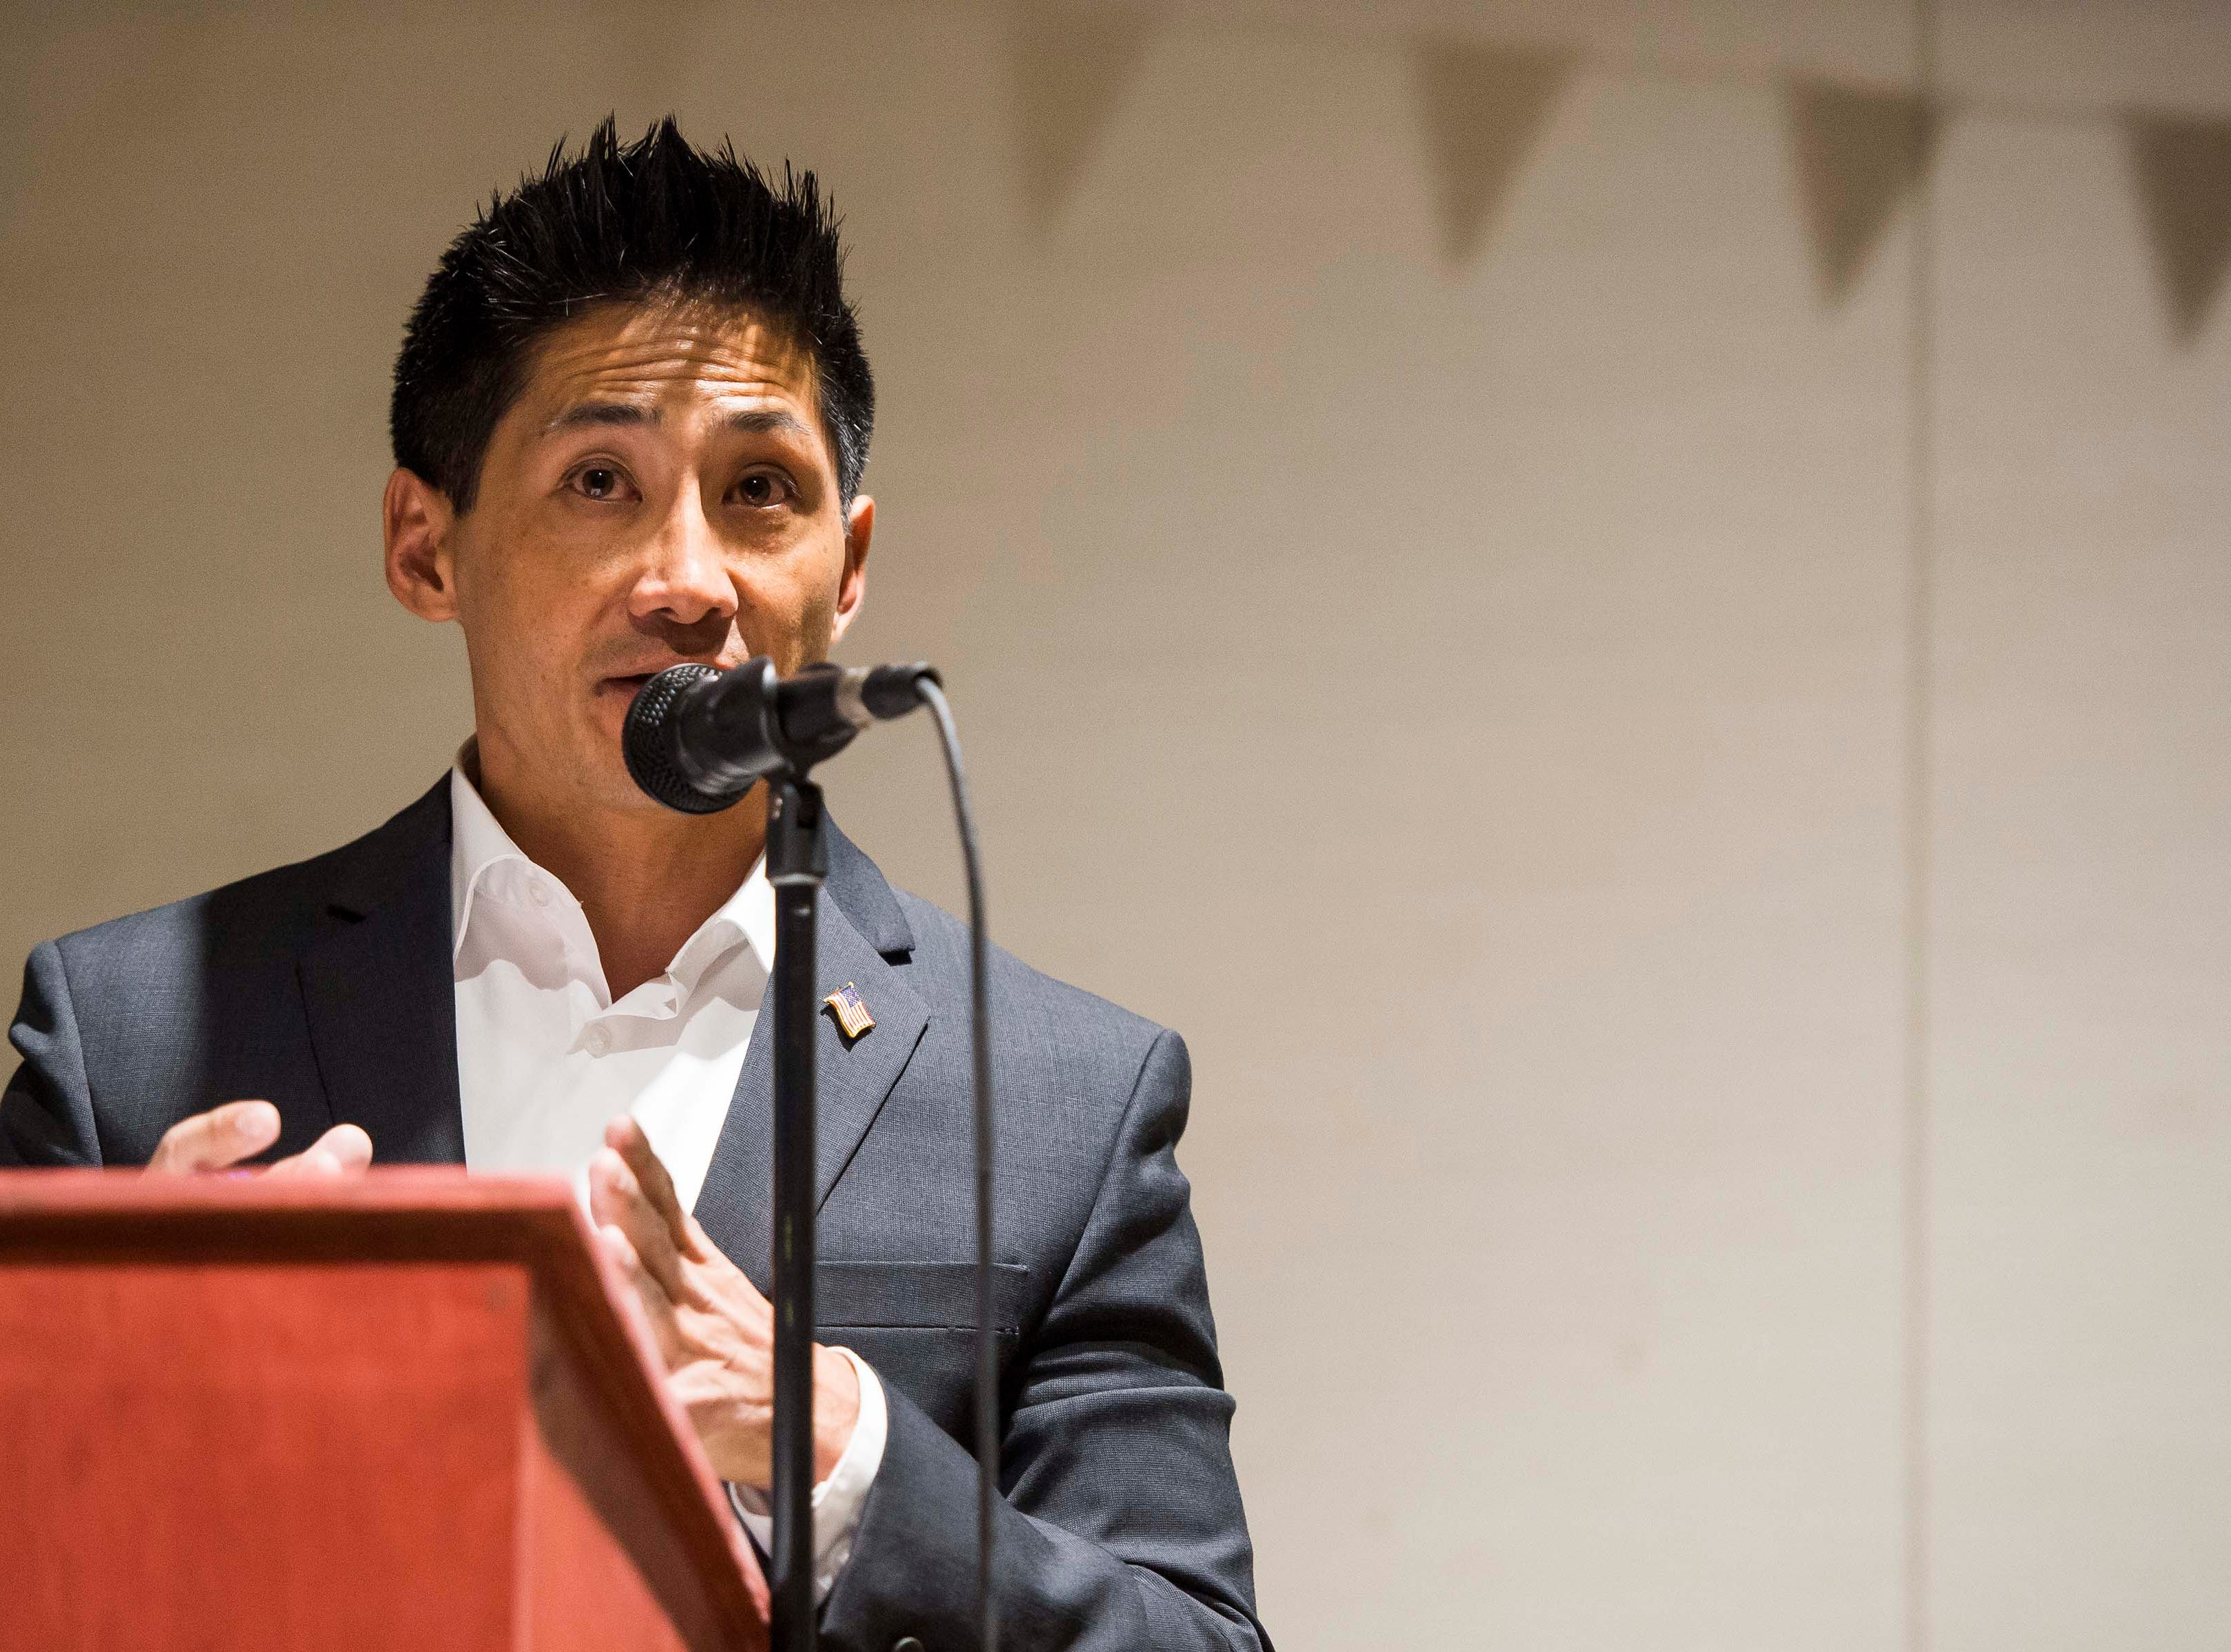 Colorado's 2nd Congressional District Republican nominee Peter Yu participates in a debate with Democratic nominee Joe Neguse on Wednesday, Sept. 26, 2018, at the Loveland Classical Schools in Loveland, Colo.